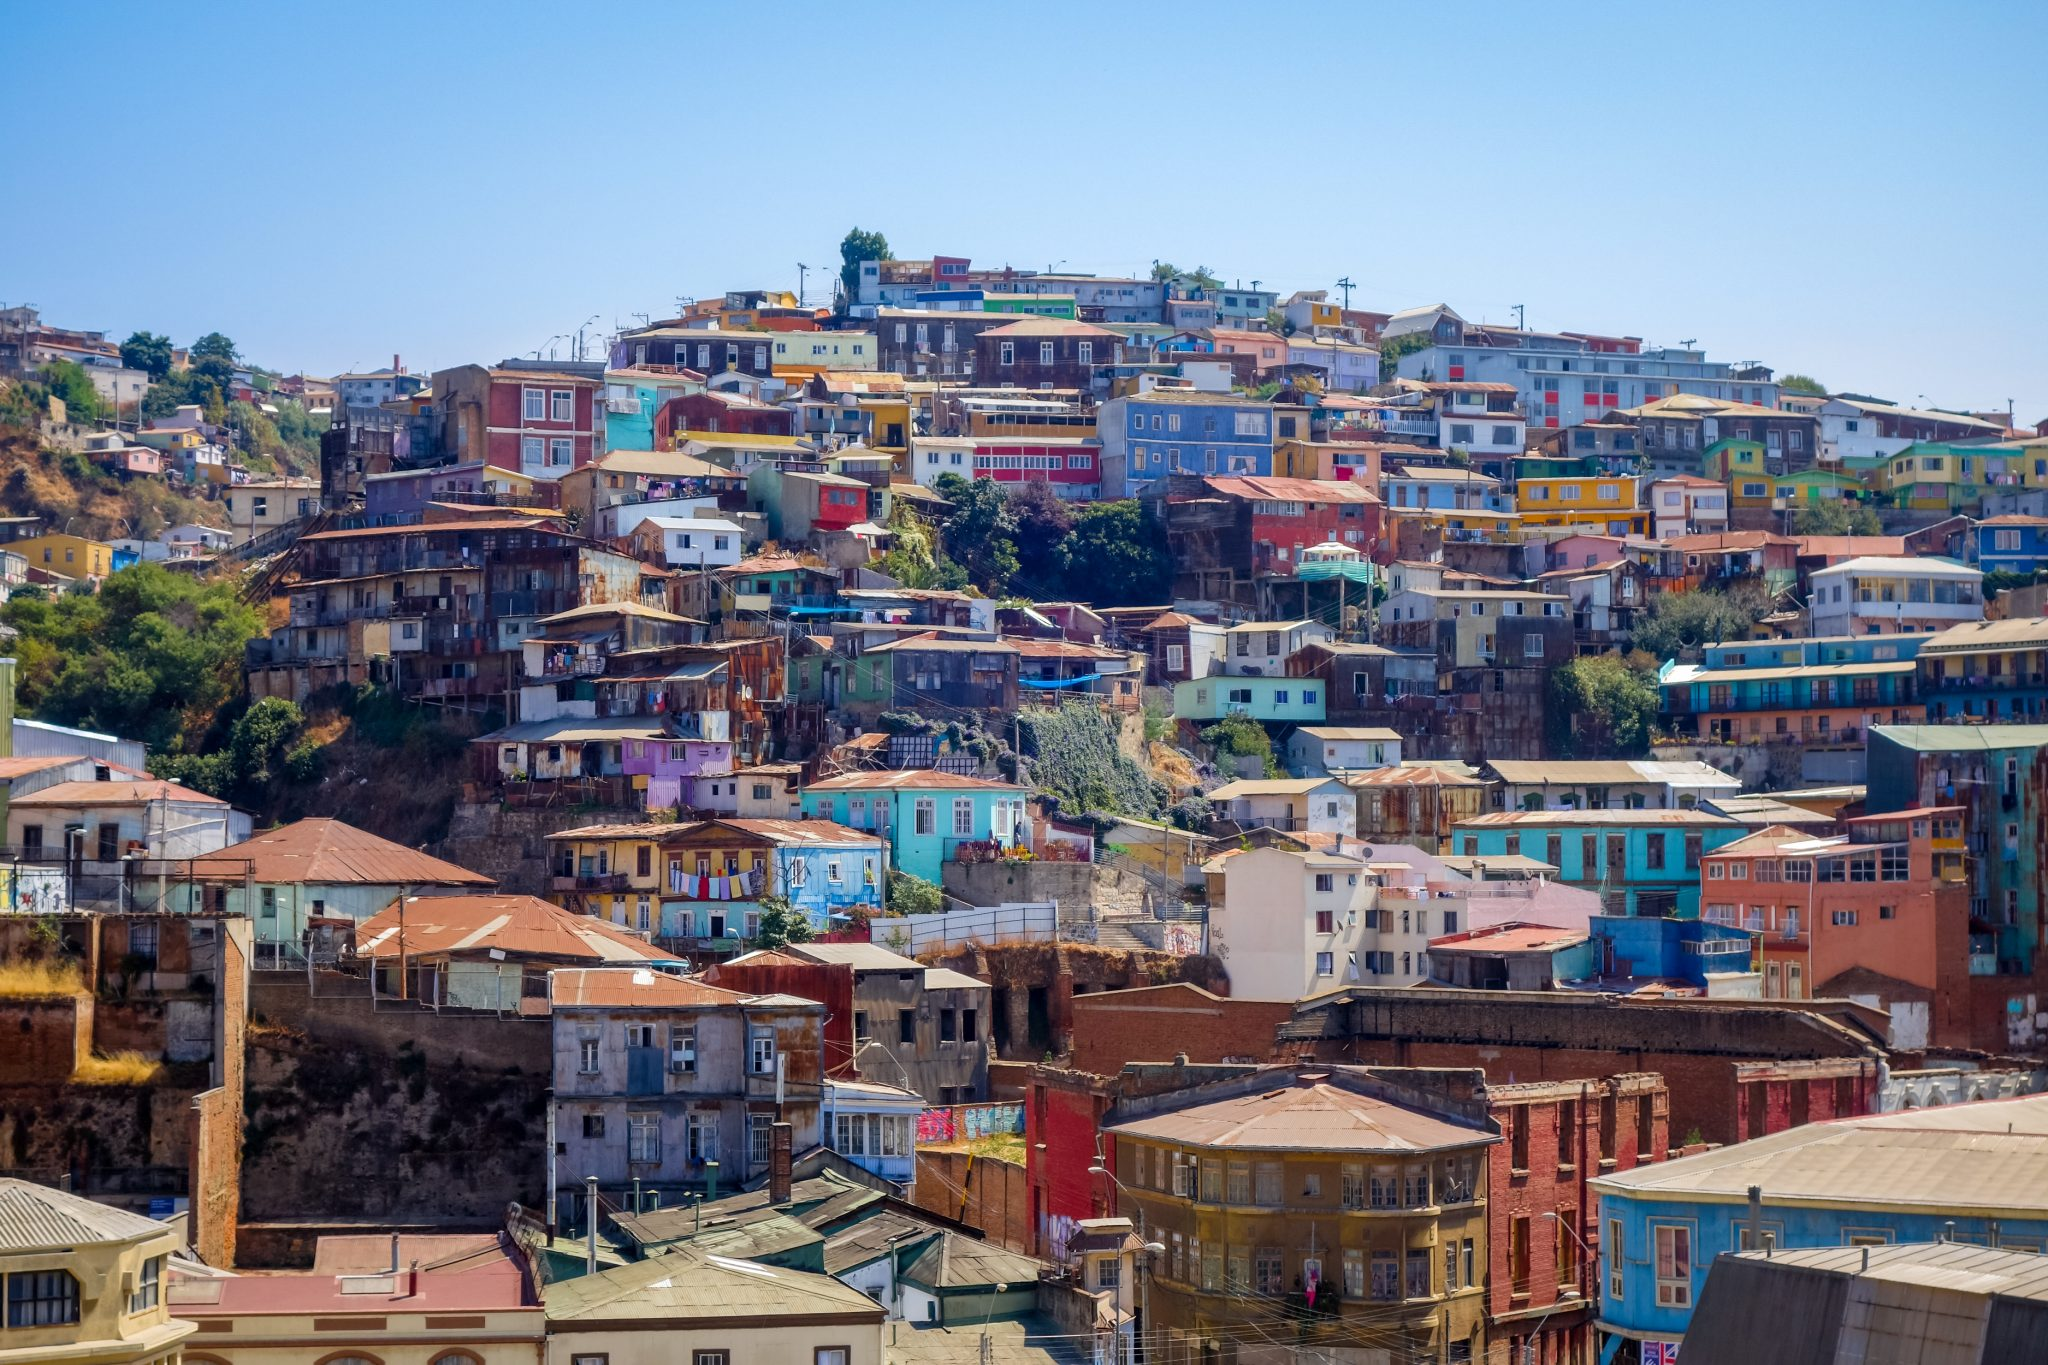 Colourful old houses in Valparaiso, Chile